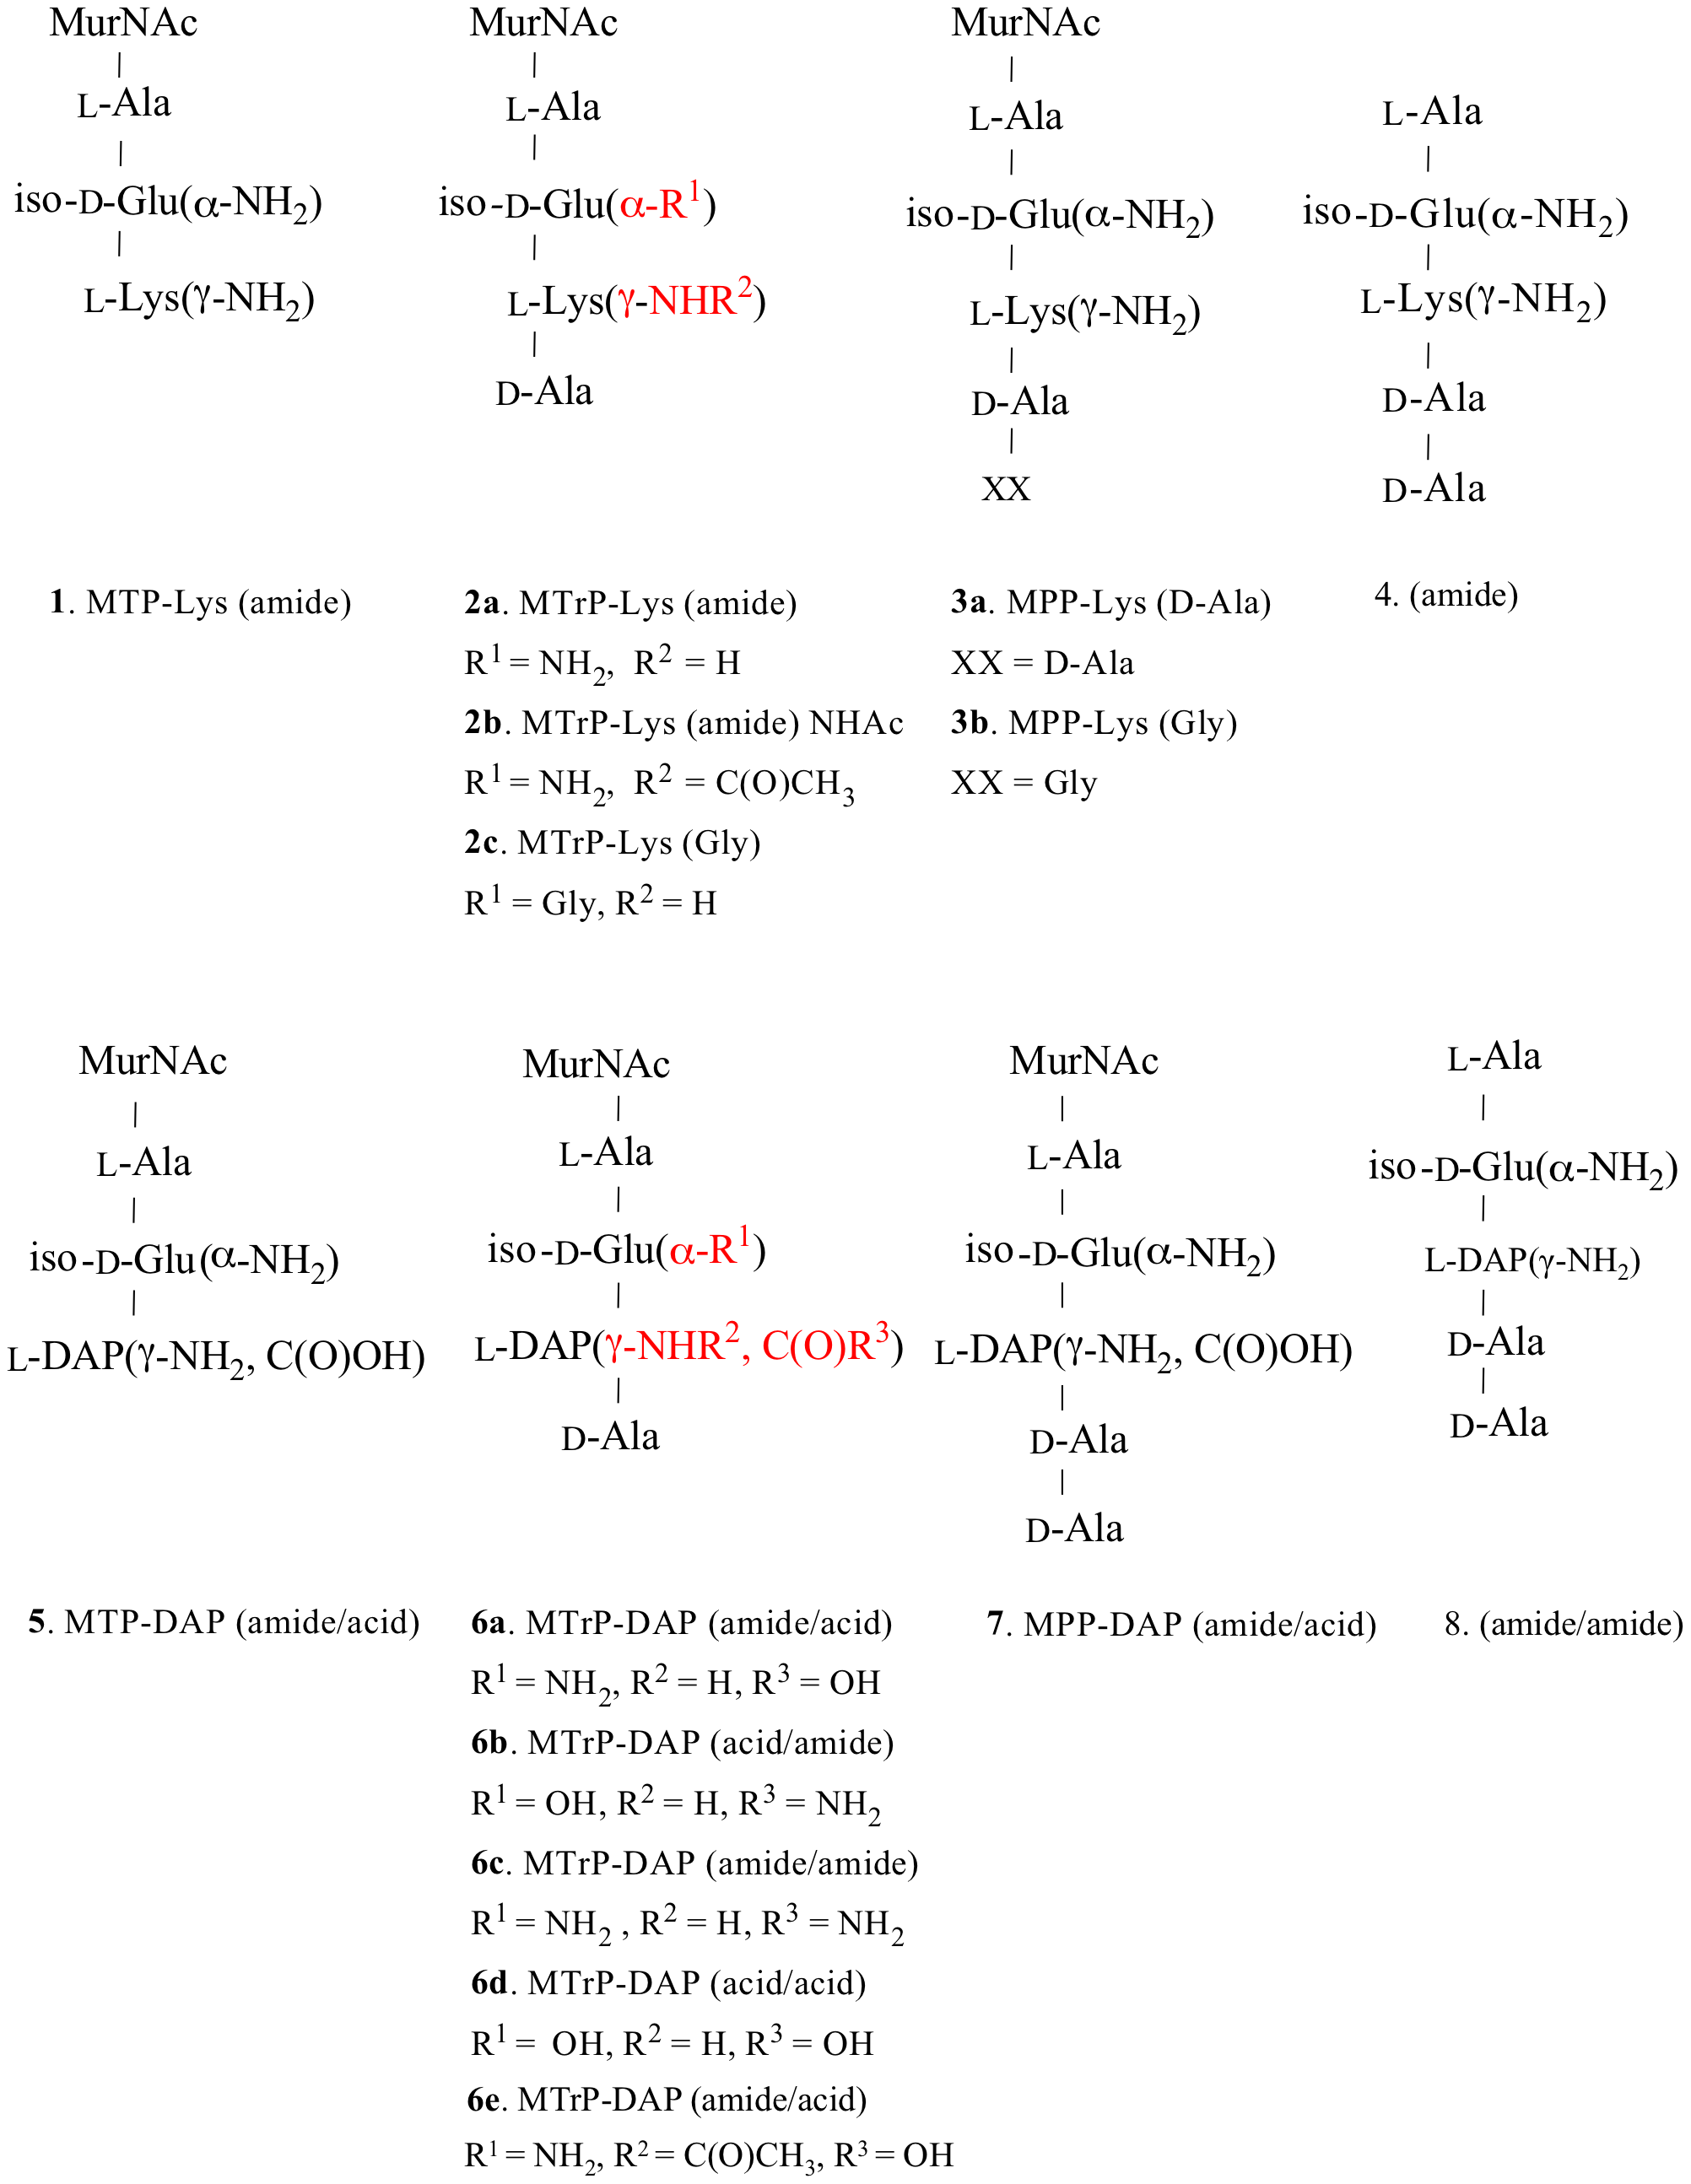 Structures of synthetic muropeptides used in the binding and phenotypic assays.